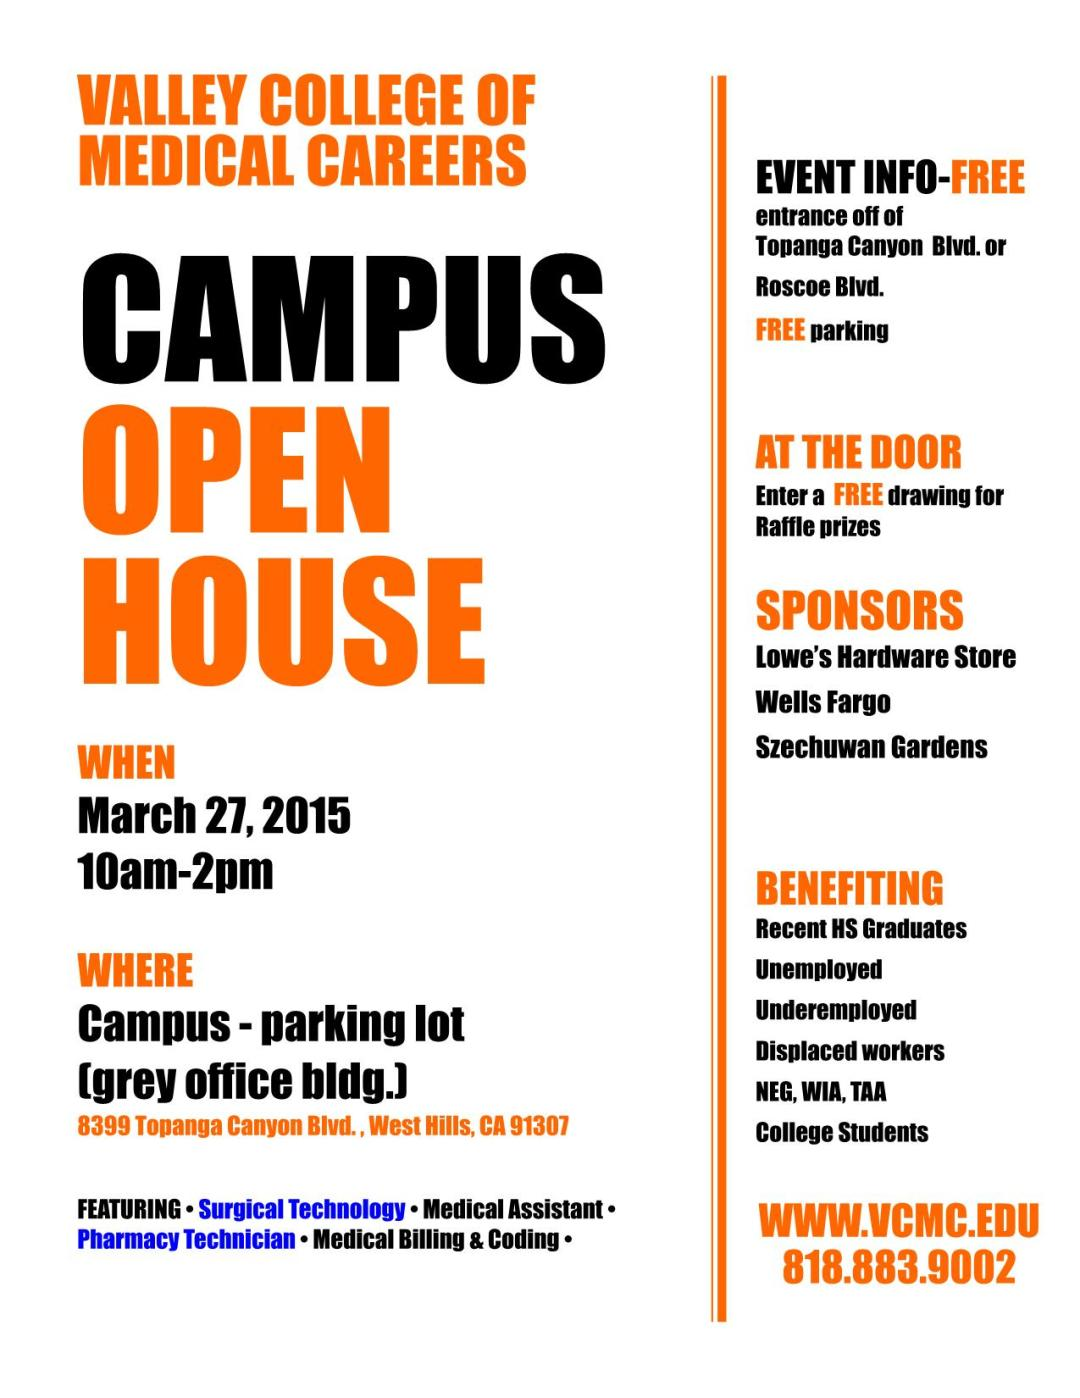 Valley College of Medical Careers Campus Open House